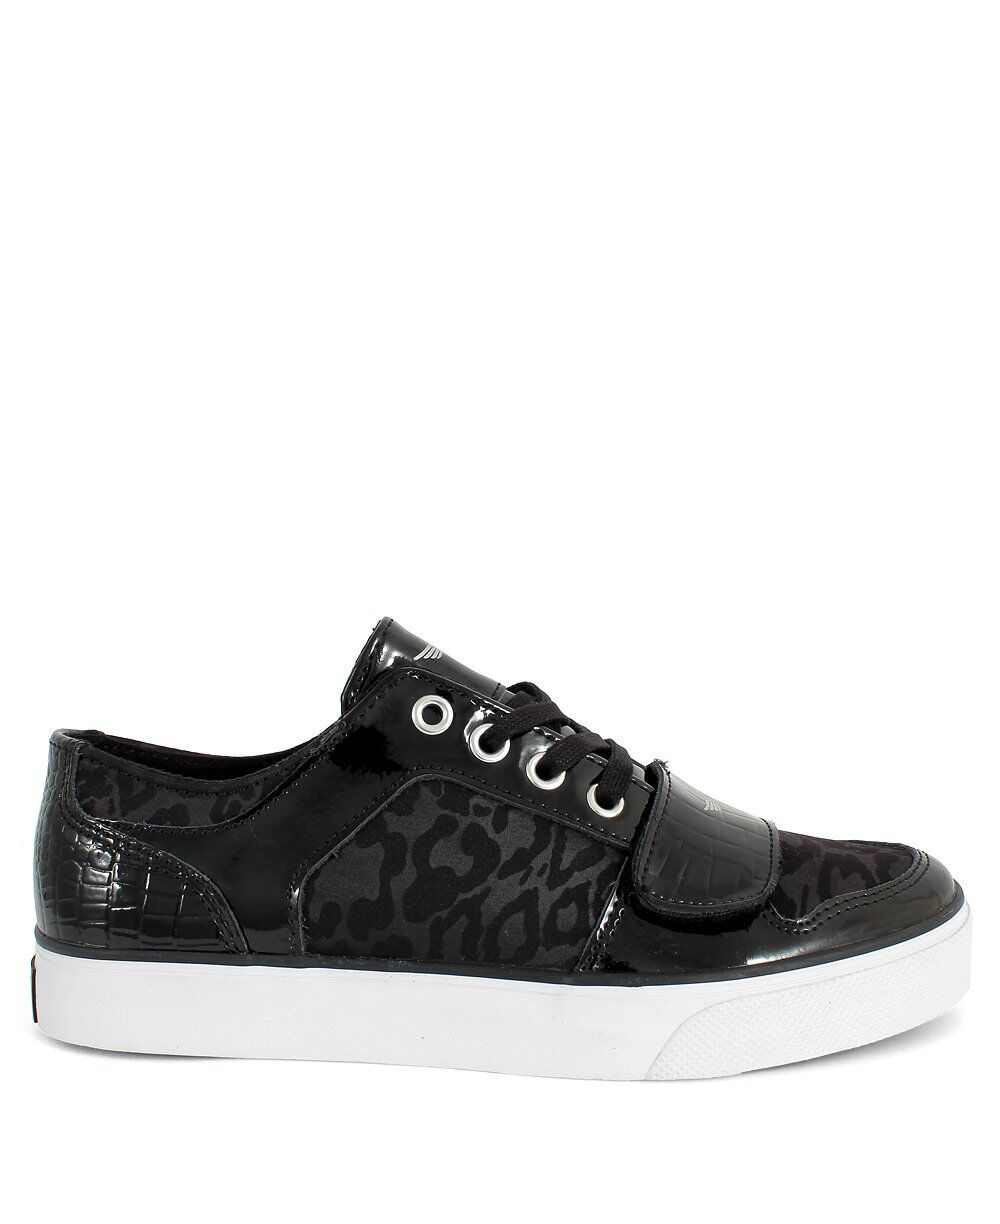 CREATIVE RECREATION BOYS BLACK WHITE YOUTH SCHOOL GS CESARIO LO TRAINERS